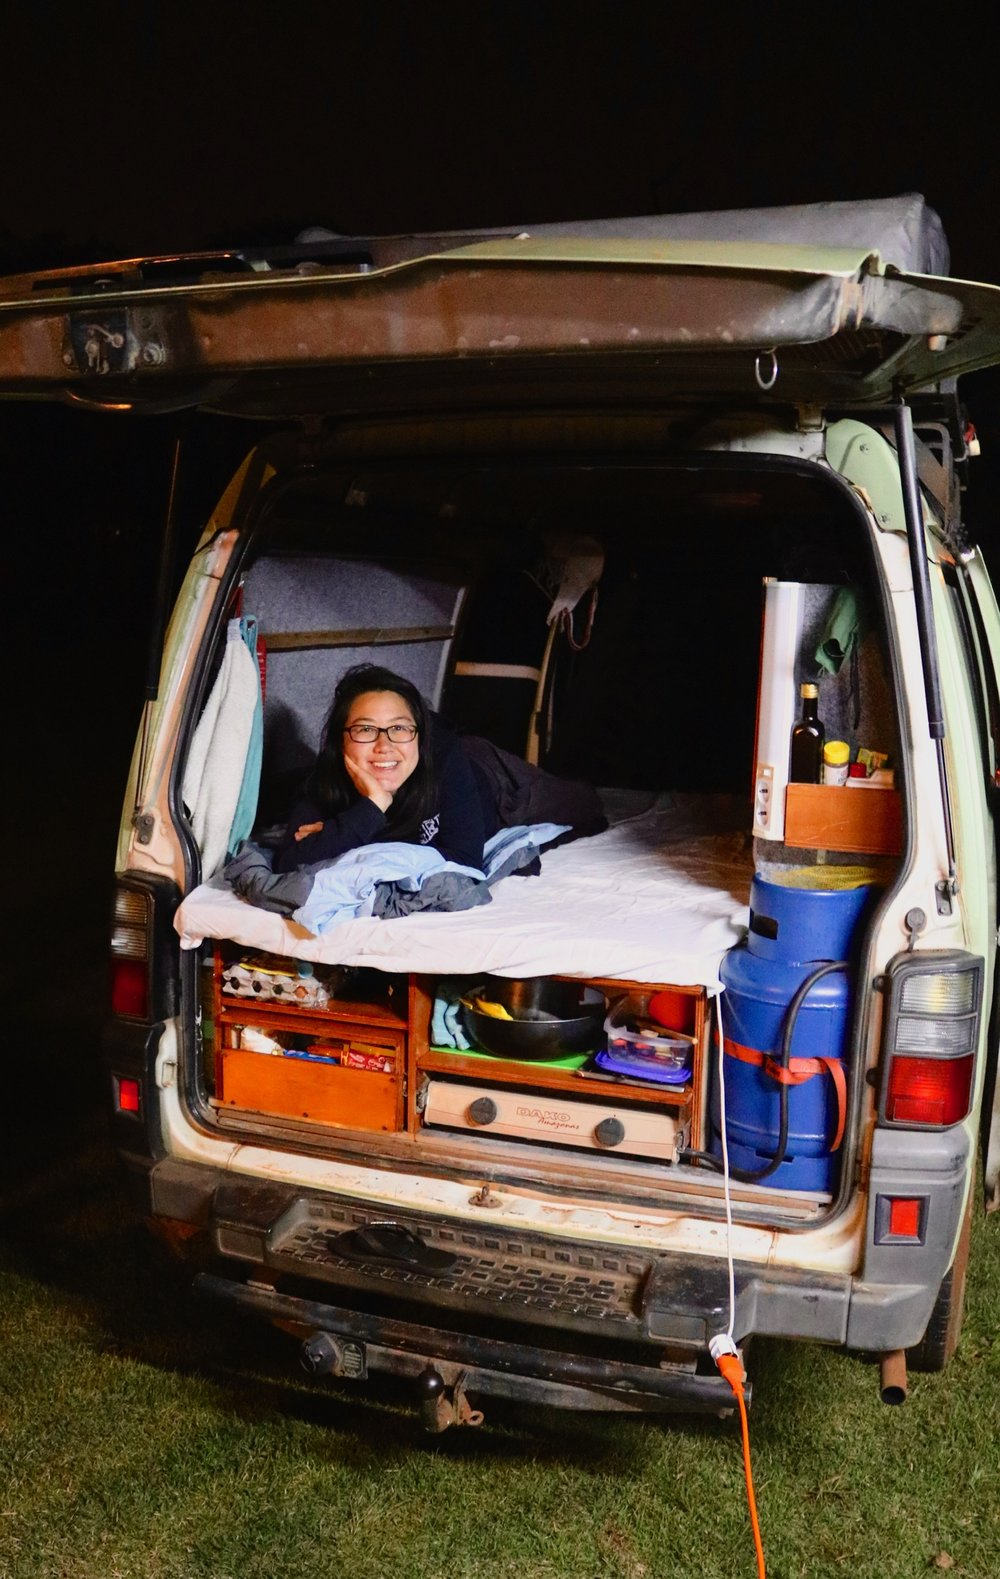 campervan conversion mattress - 4.jpg